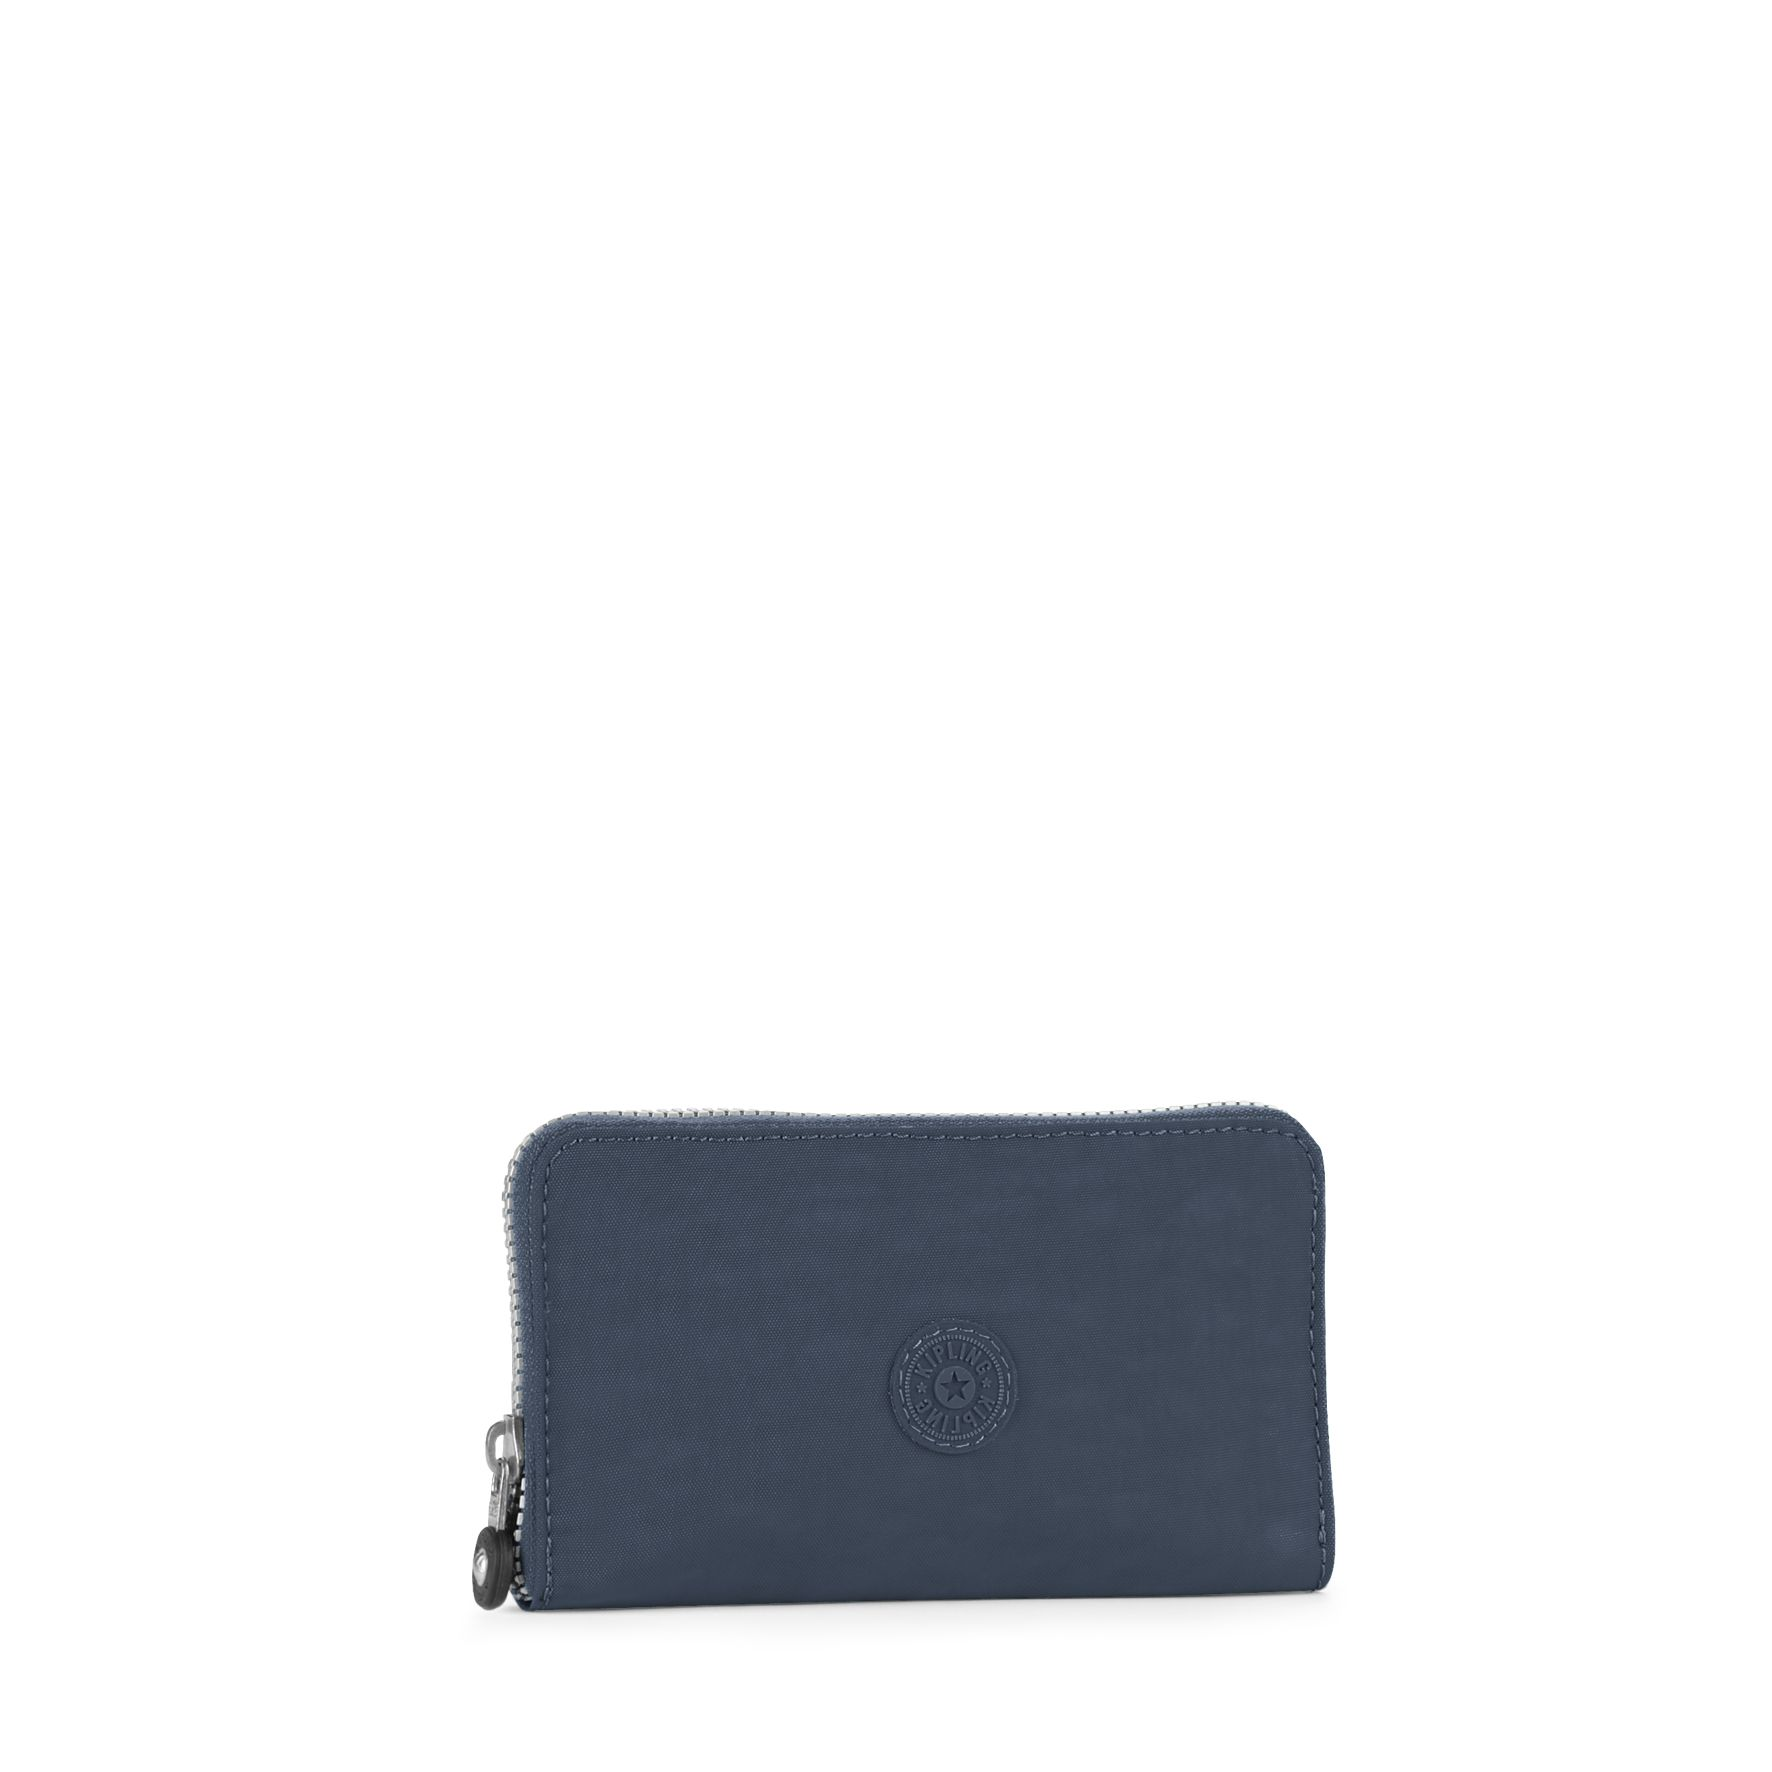 Olvie large wallet